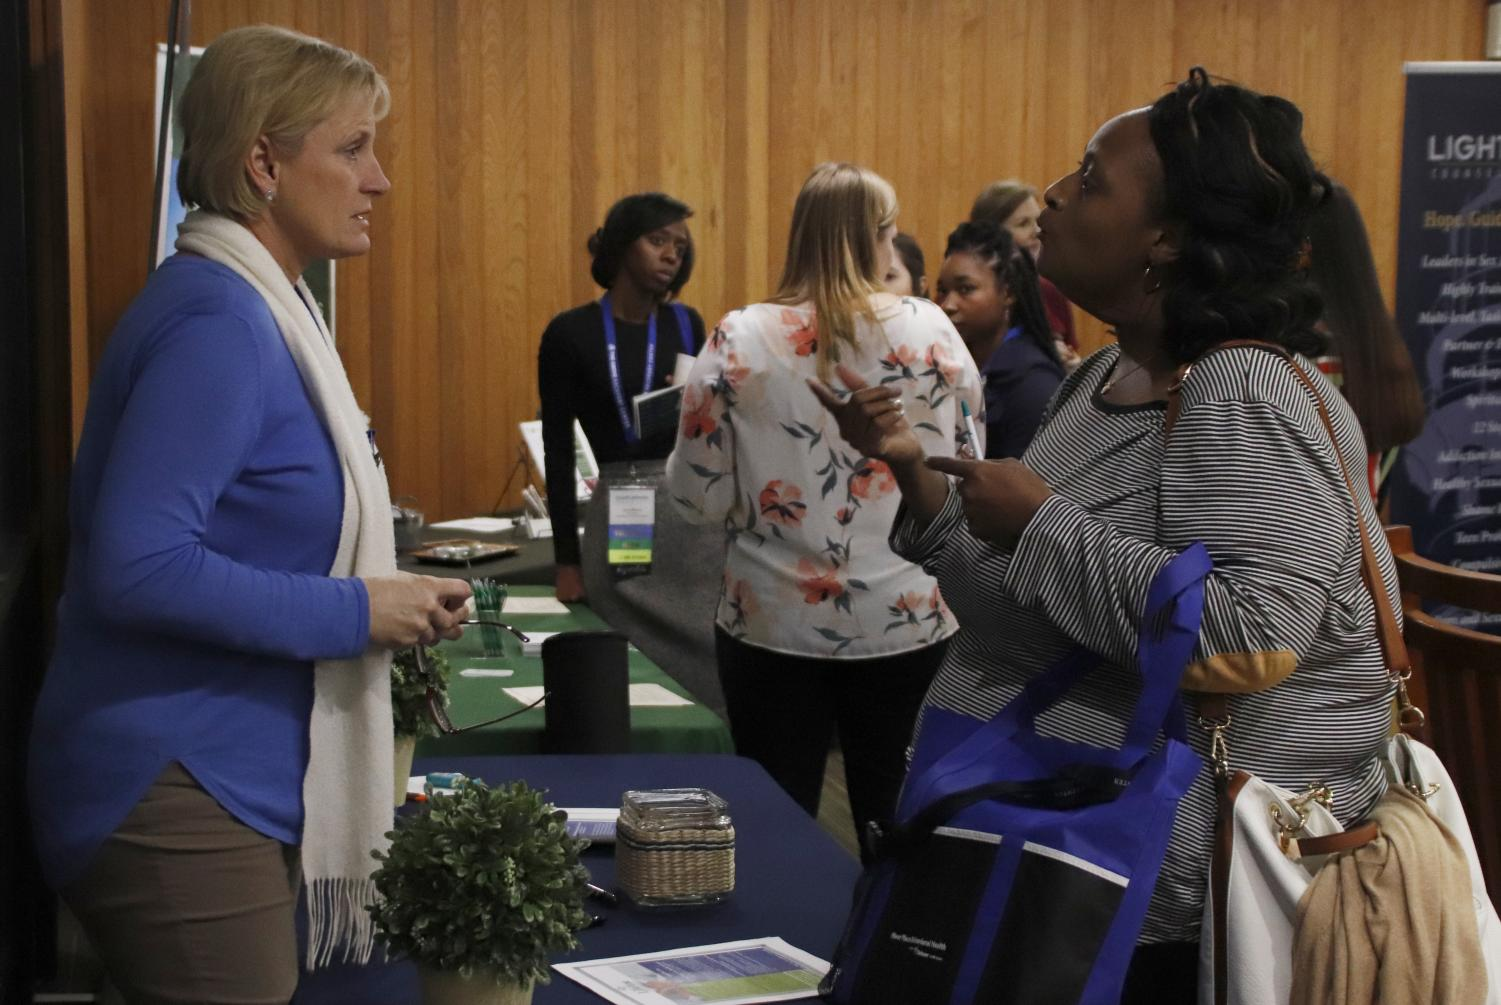 Sherry Chaney, a licensed clinical social worker for Lifeline Behavioral Health, left, speaks with other professionals in the field at the second annual Terrell Conference to build a community. This year's conference included more time for attendees to network.